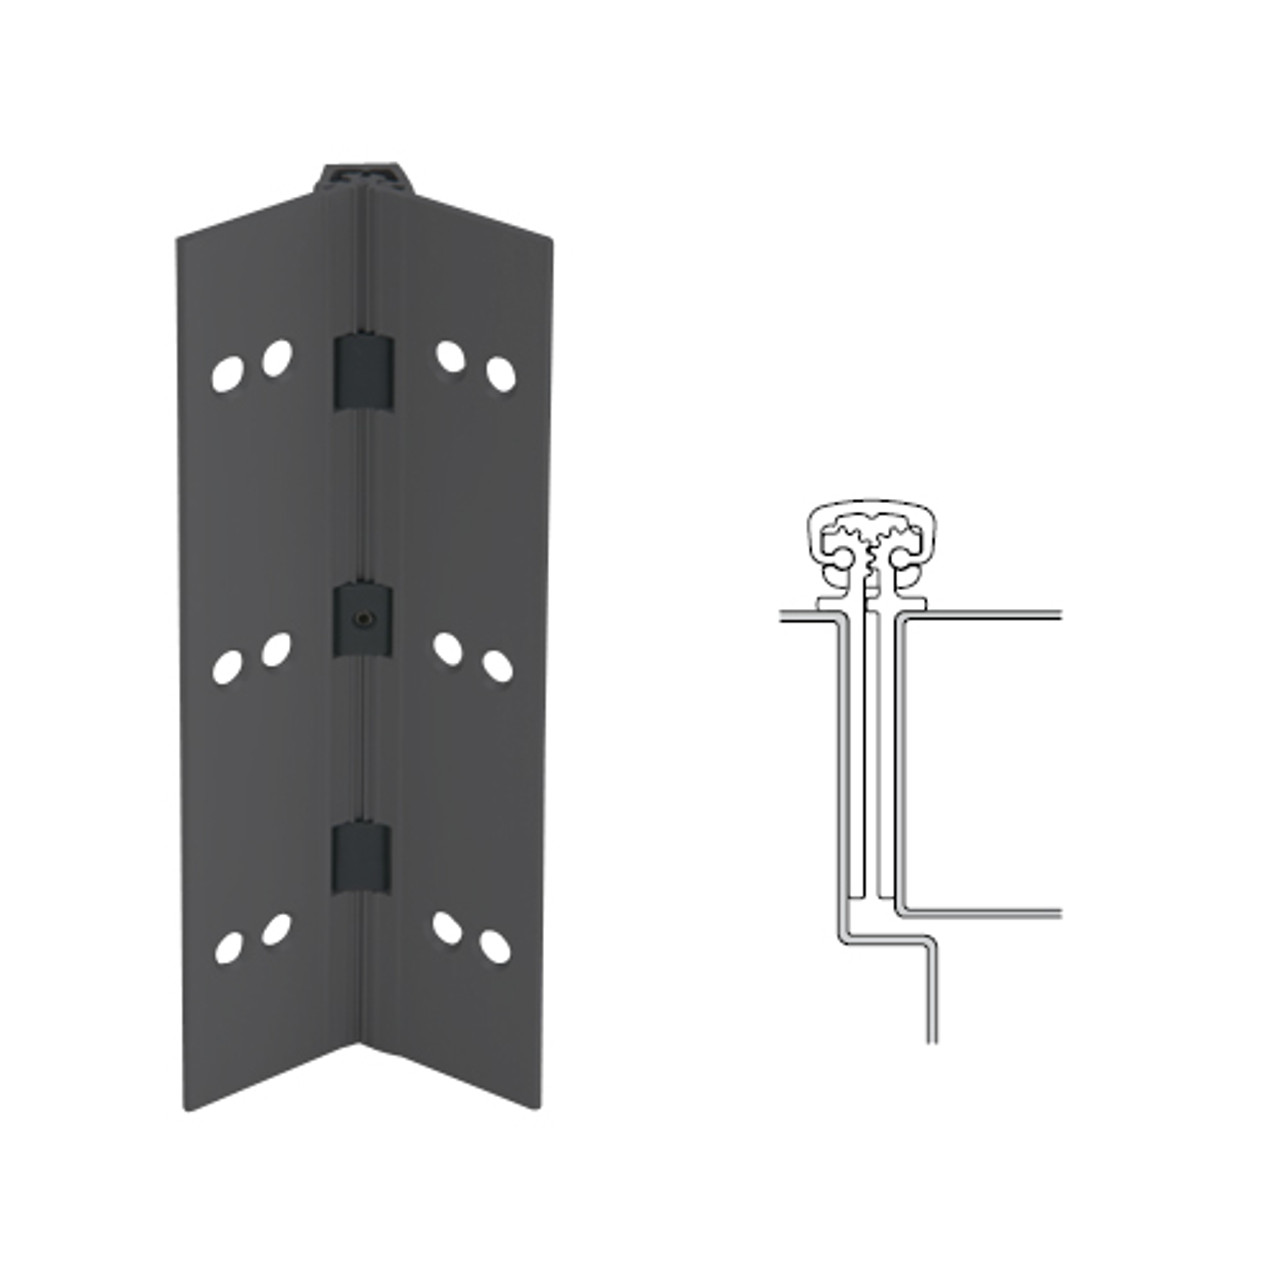 027XY-315AN-120-WD IVES Full Mortise Continuous Geared Hinges with Wood Screws in Anodized Black